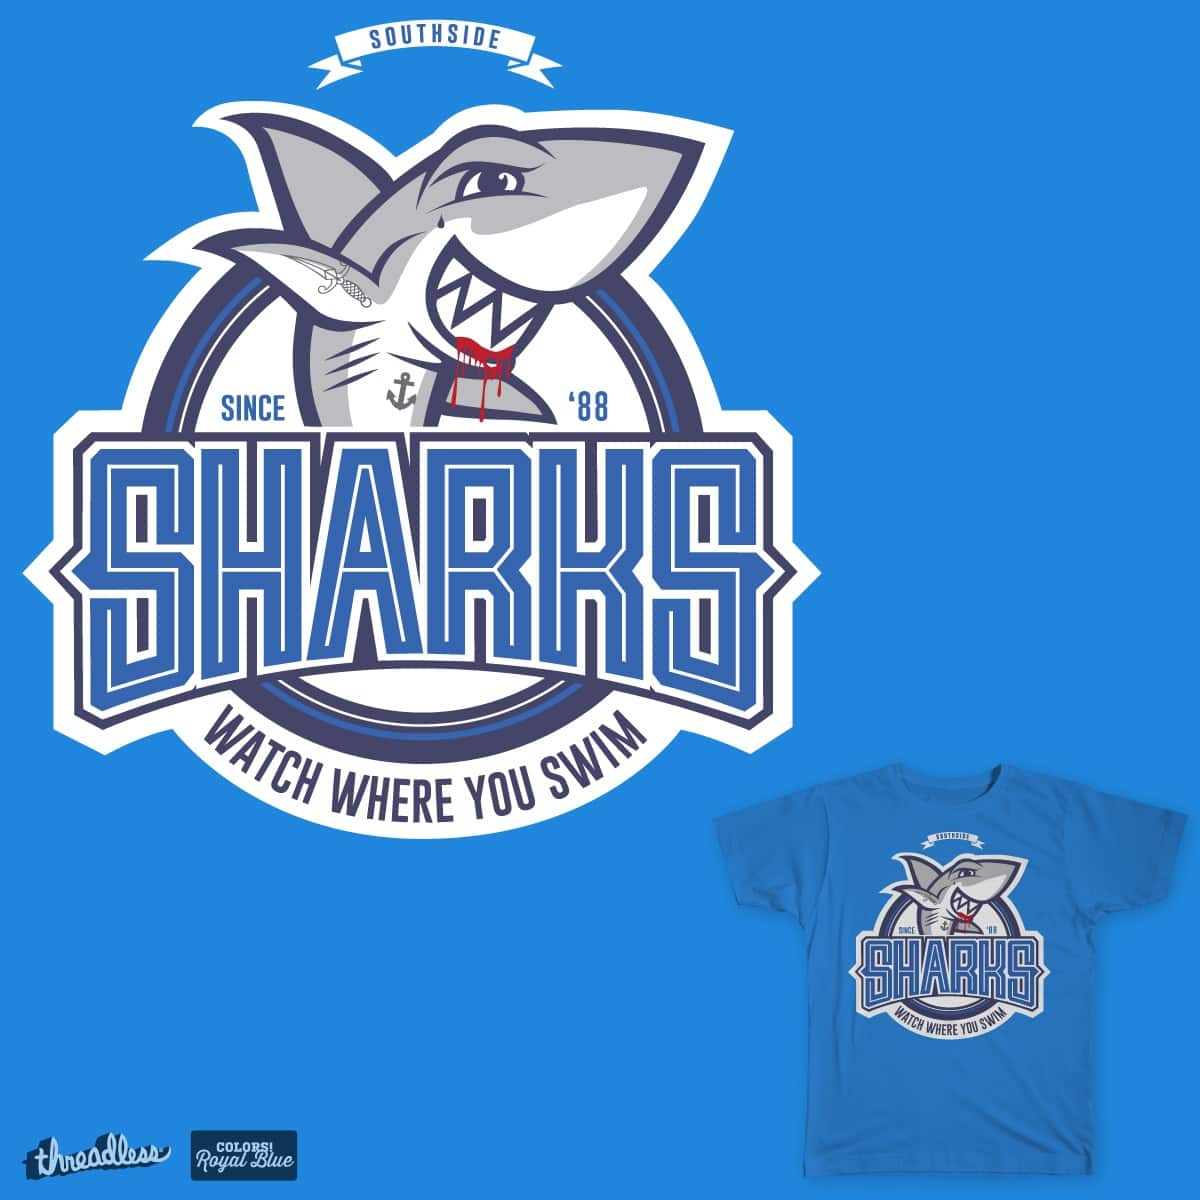 'Southside Sharks' by studiosucho on Threadless